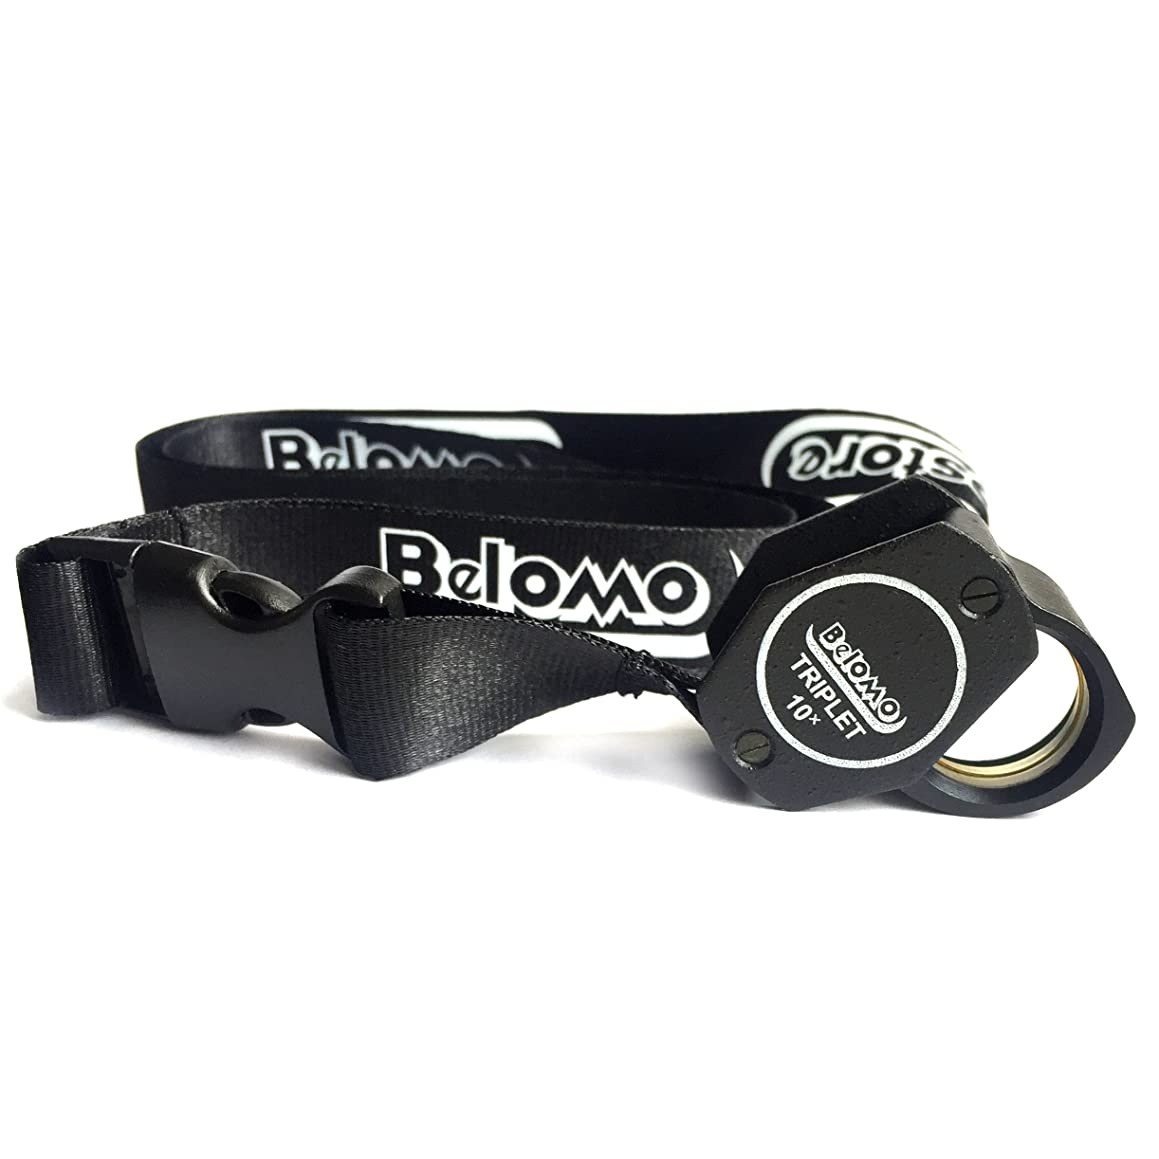 BelOMO 10x Triplet Loupe Magnifier with Attached Deluxe BelOMO Logo Lanyard, Optical Glass with Anti-Reflection Coating for a Bright, Clear and Color Correct View